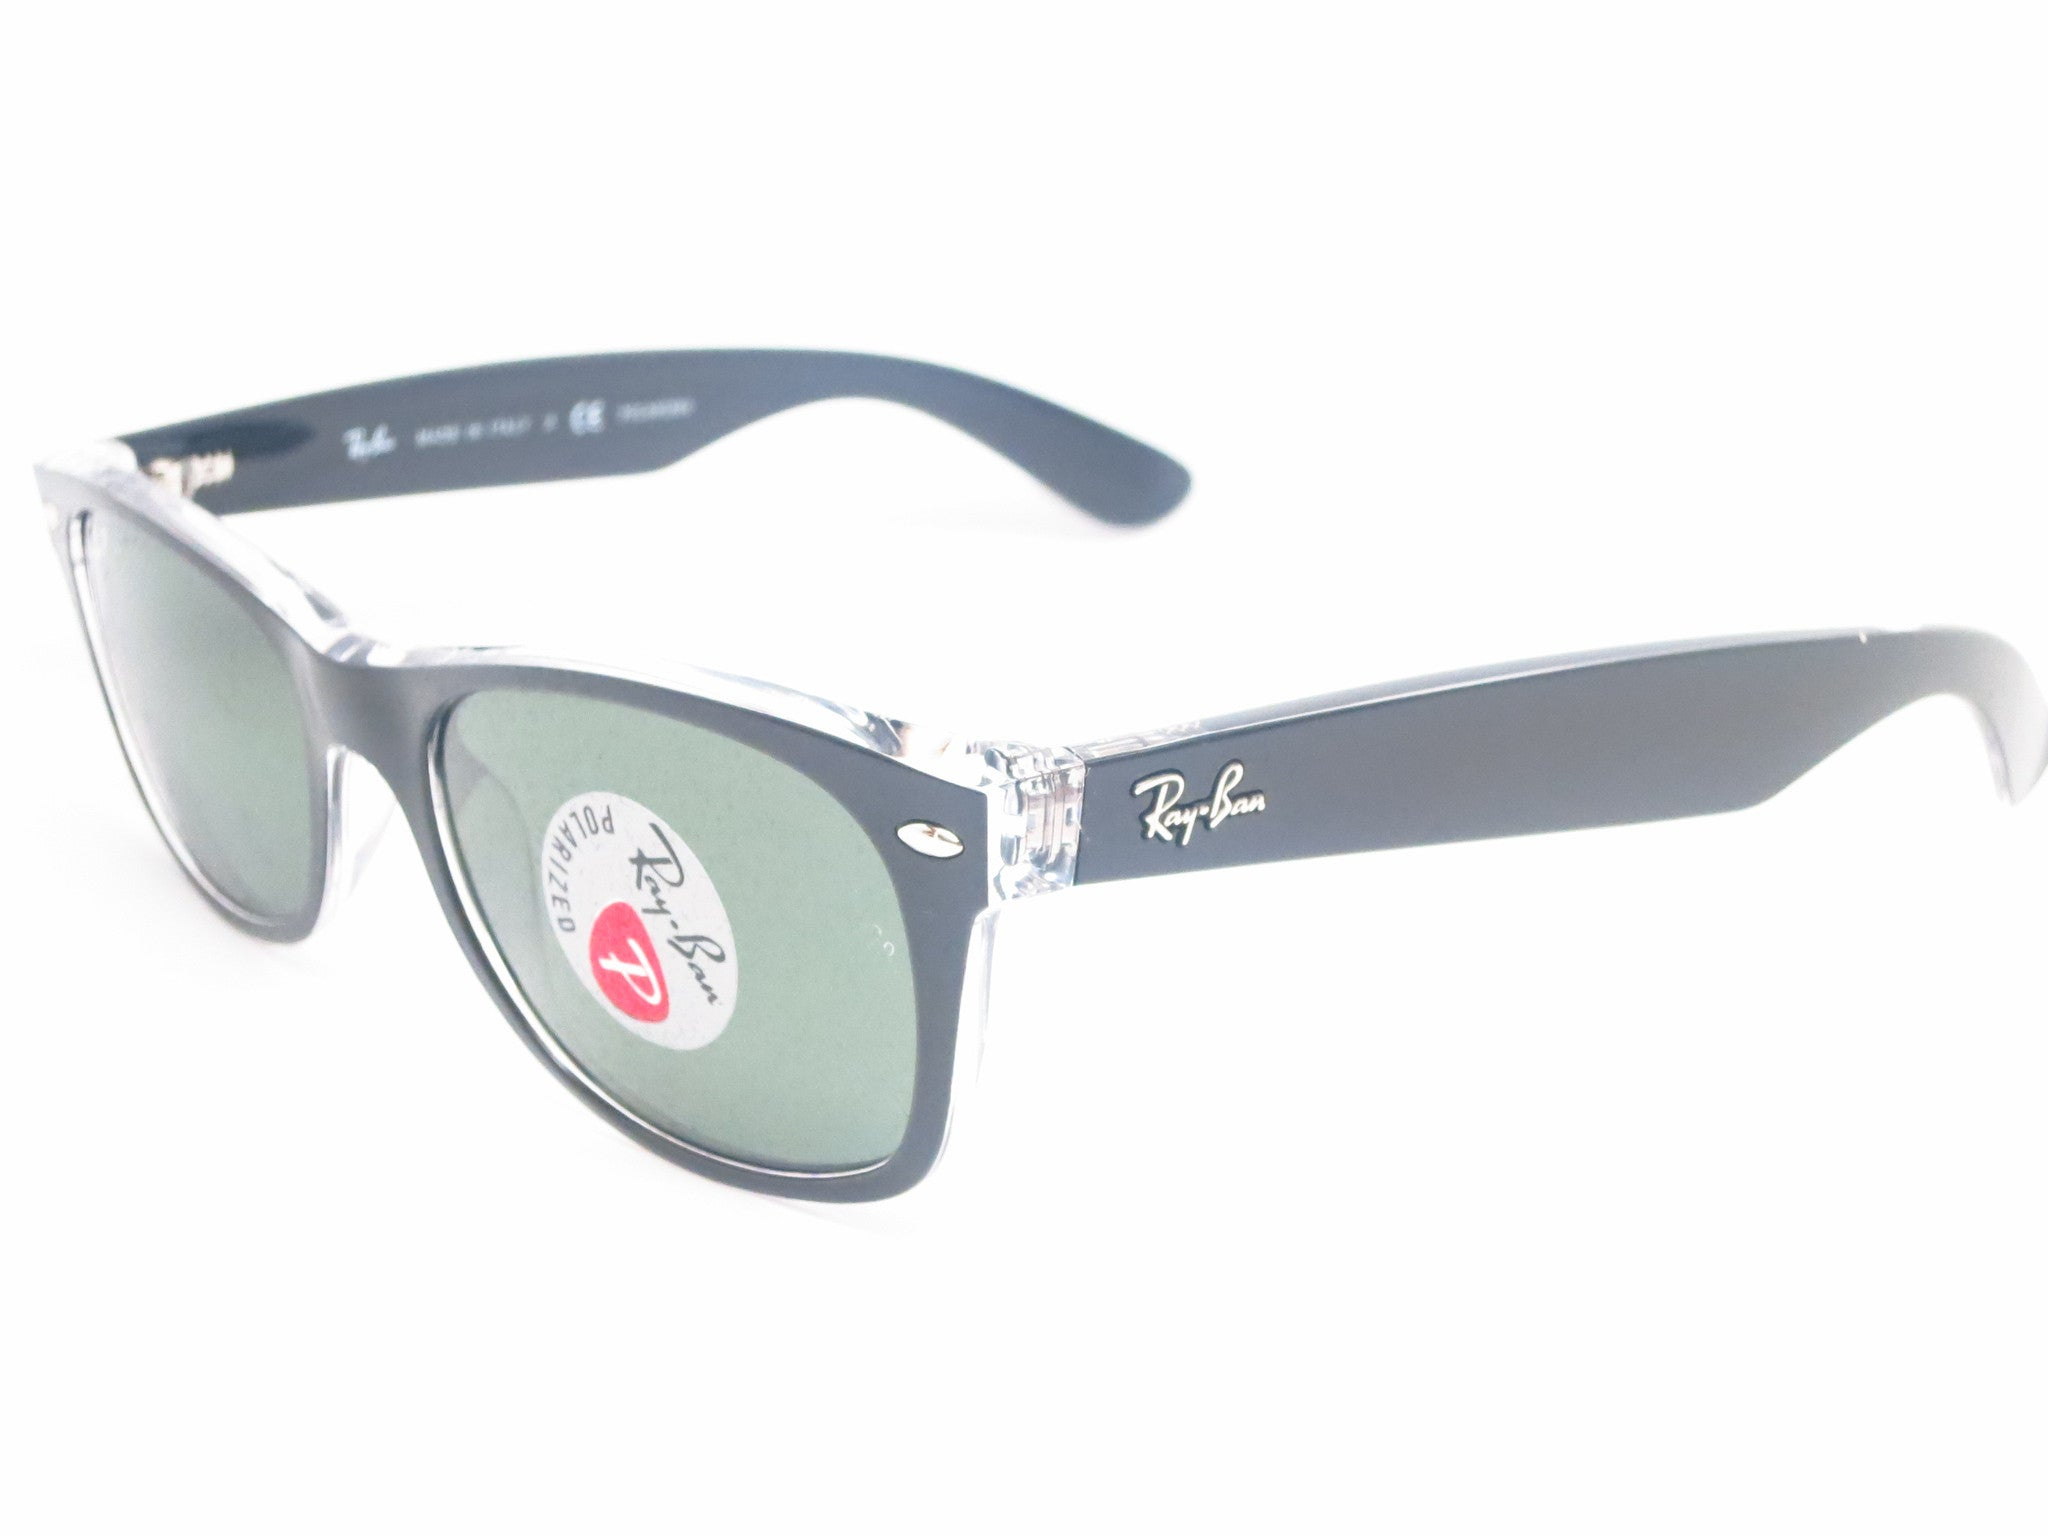 200c386b307 Ray-Ban RB 2132 New Wayfarer 6052 58 52mm Top Black on Transparent Polarized  ...